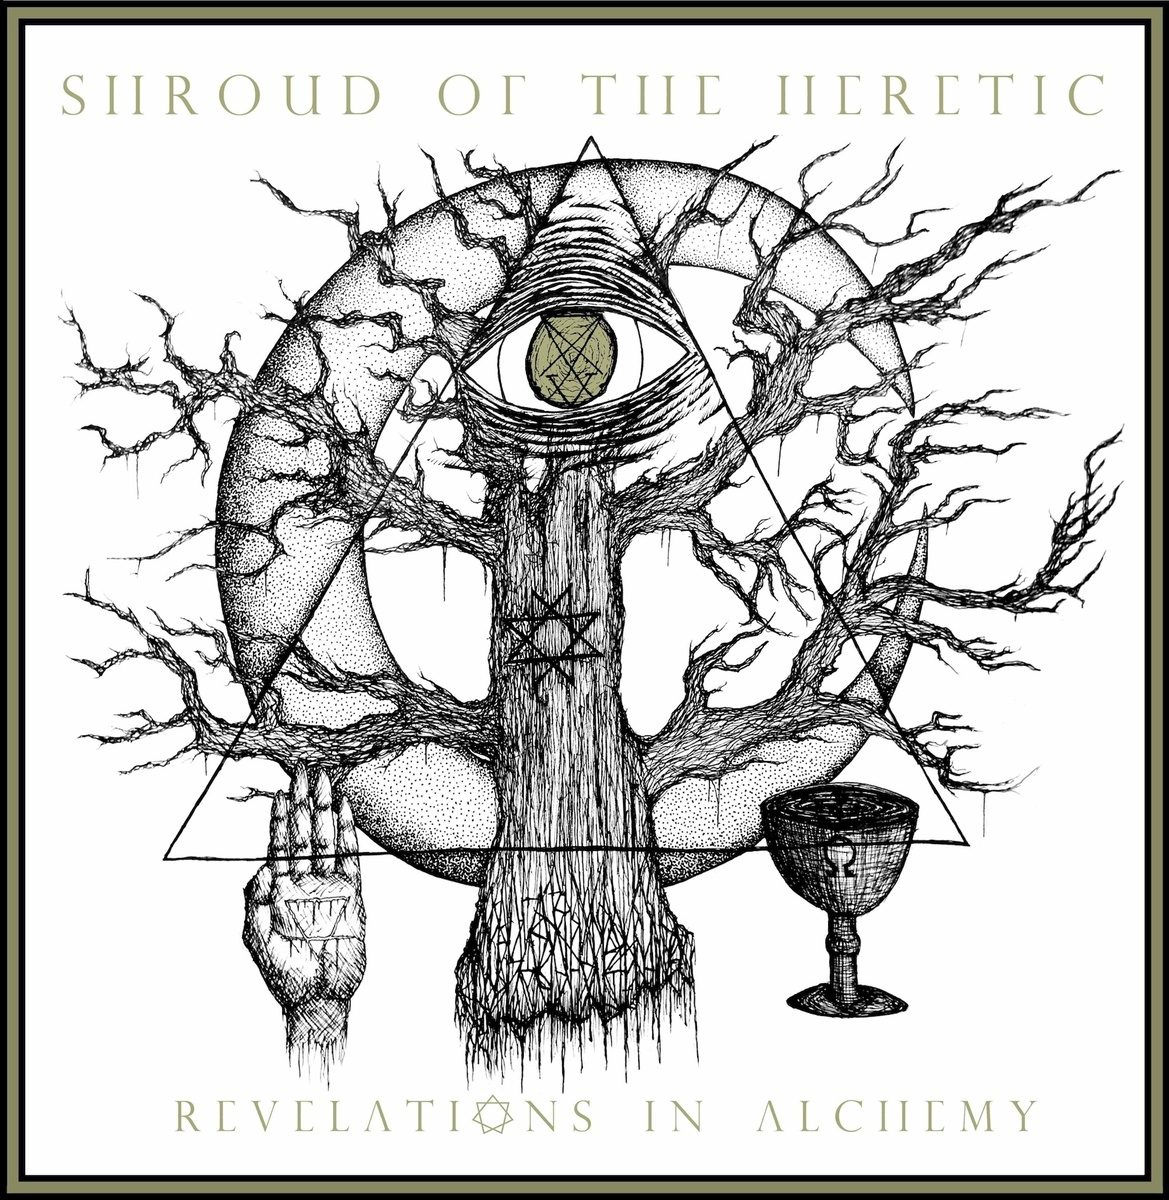 Shroud of the Heretic – Revelations in Alchemy Review